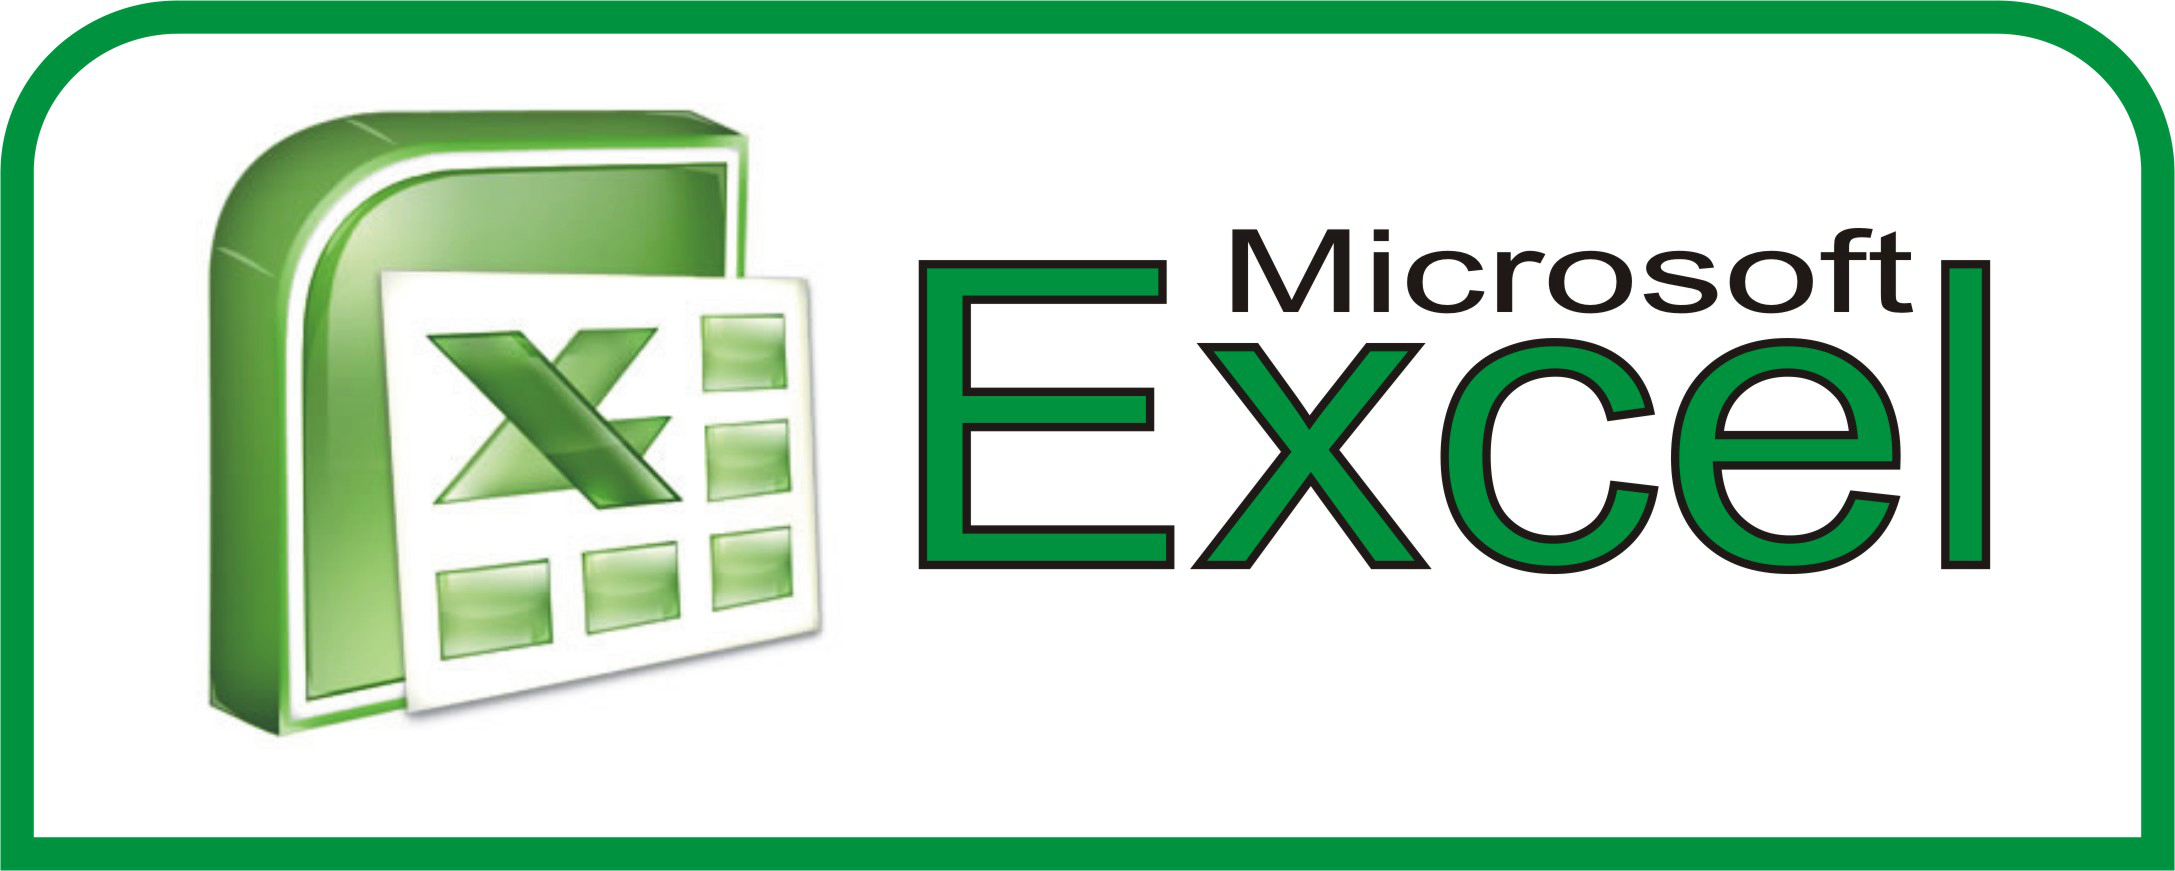 Ediblewildsus  Prepossessing  Excel Shortcuts You Probably Didnt Know About  Techdissected With Exquisite If Test Excel Besides Microsoft Excel Training Online Free Furthermore Excel Hour Function With Enchanting Online Excel Training Free Also Excel Row Limits In Addition Excel Standard Deviation Graph And Nested Functions Excel As Well As How To Calculate Percentages In Excel  Additionally Baby Shower Checklist Excel From Techdissectedcom With Ediblewildsus  Exquisite  Excel Shortcuts You Probably Didnt Know About  Techdissected With Enchanting If Test Excel Besides Microsoft Excel Training Online Free Furthermore Excel Hour Function And Prepossessing Online Excel Training Free Also Excel Row Limits In Addition Excel Standard Deviation Graph From Techdissectedcom